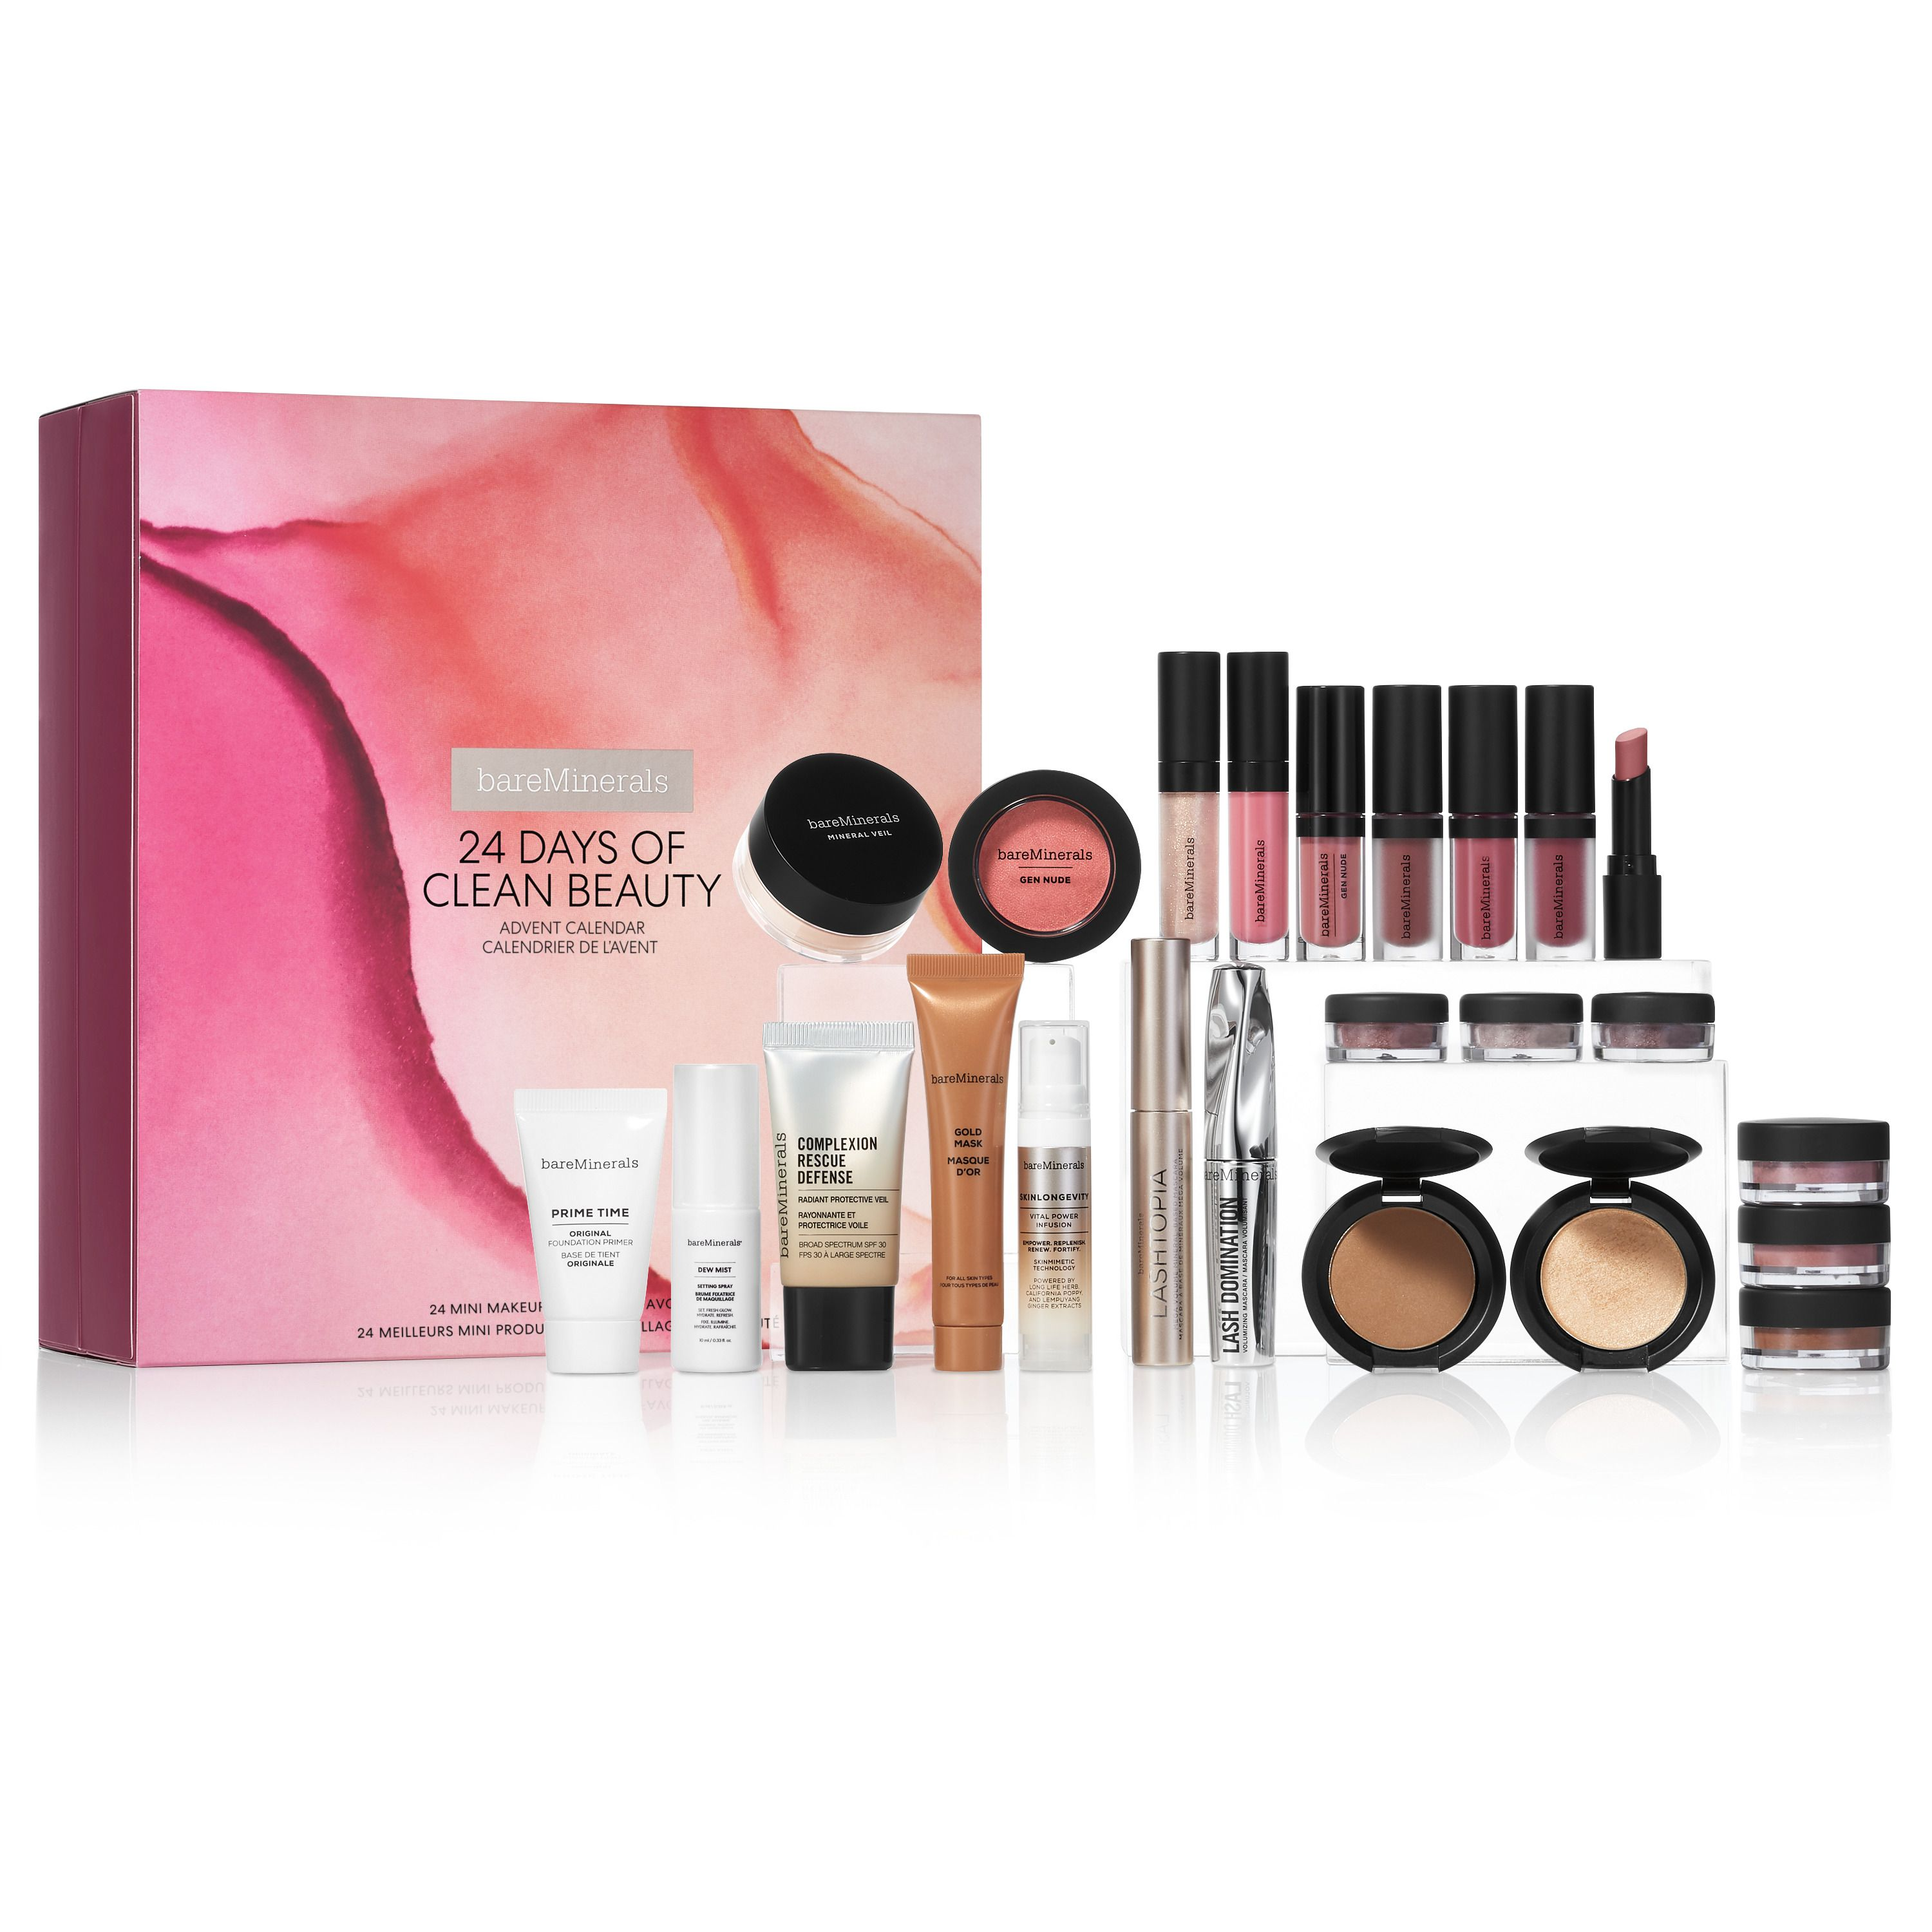 Calendrier Feelunique.Best Beauty Advent Calendars 2019 The Calendars To Buy Now